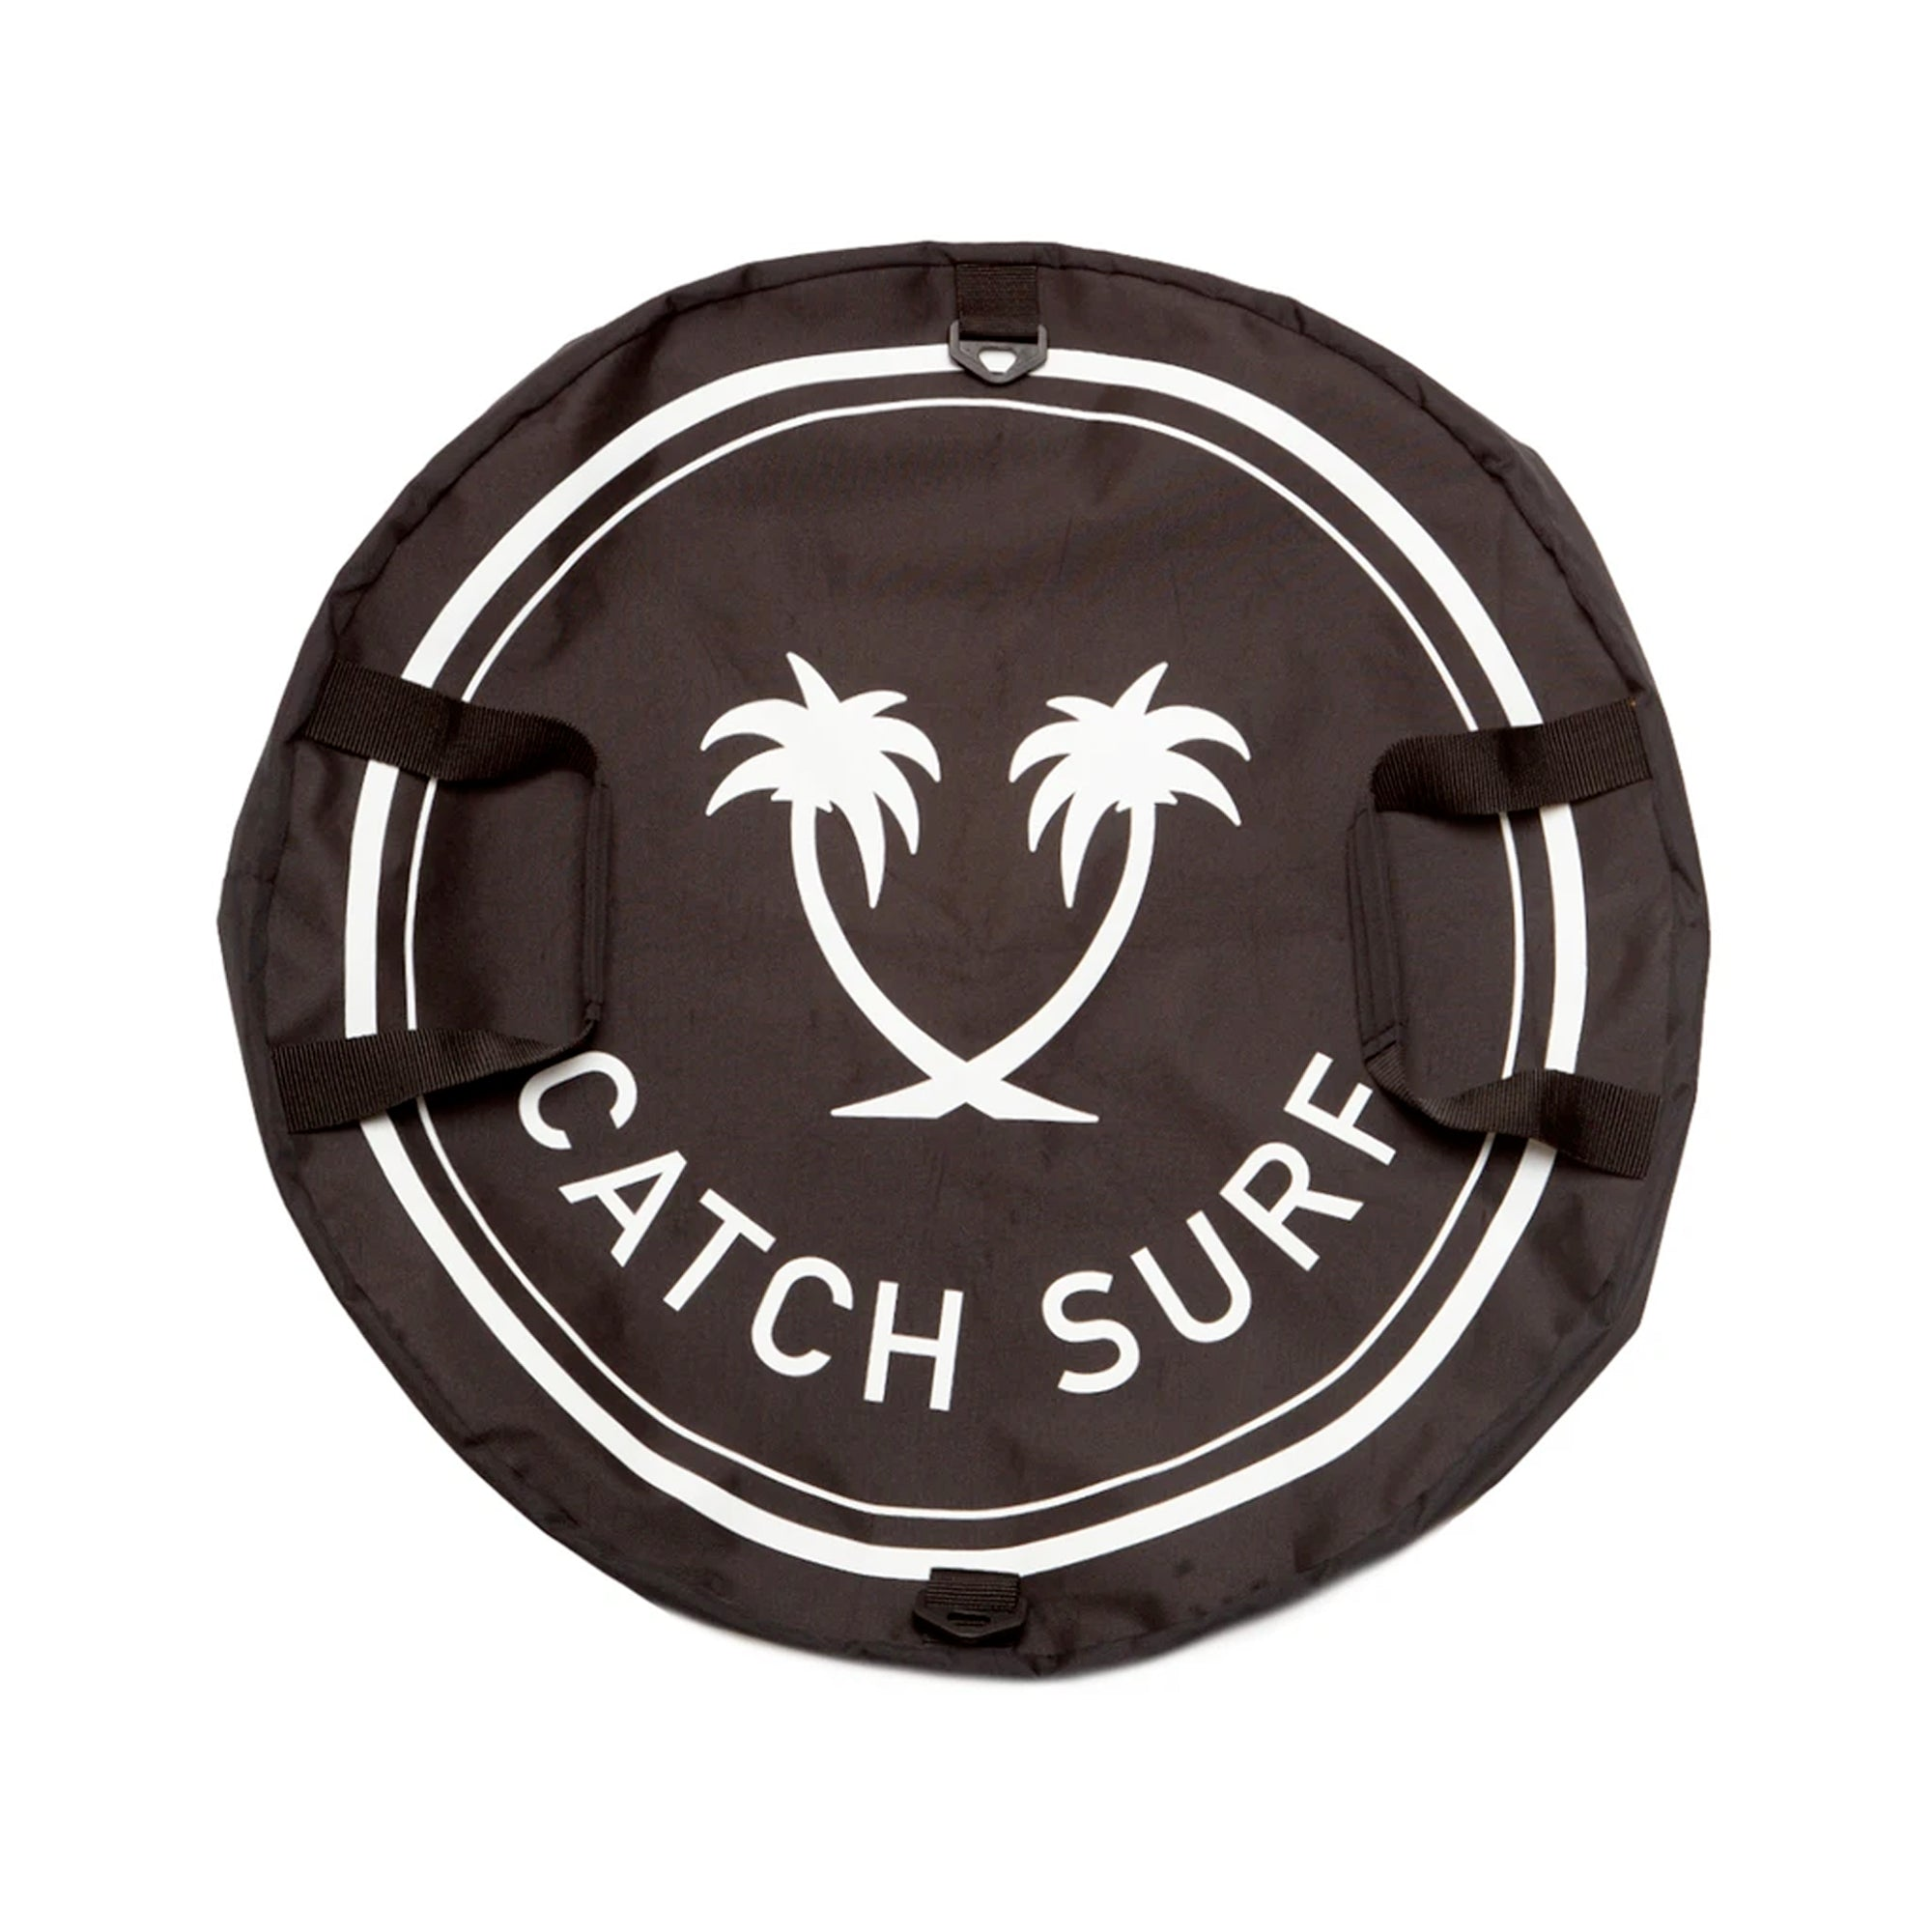 Catch Surf Changing Mat